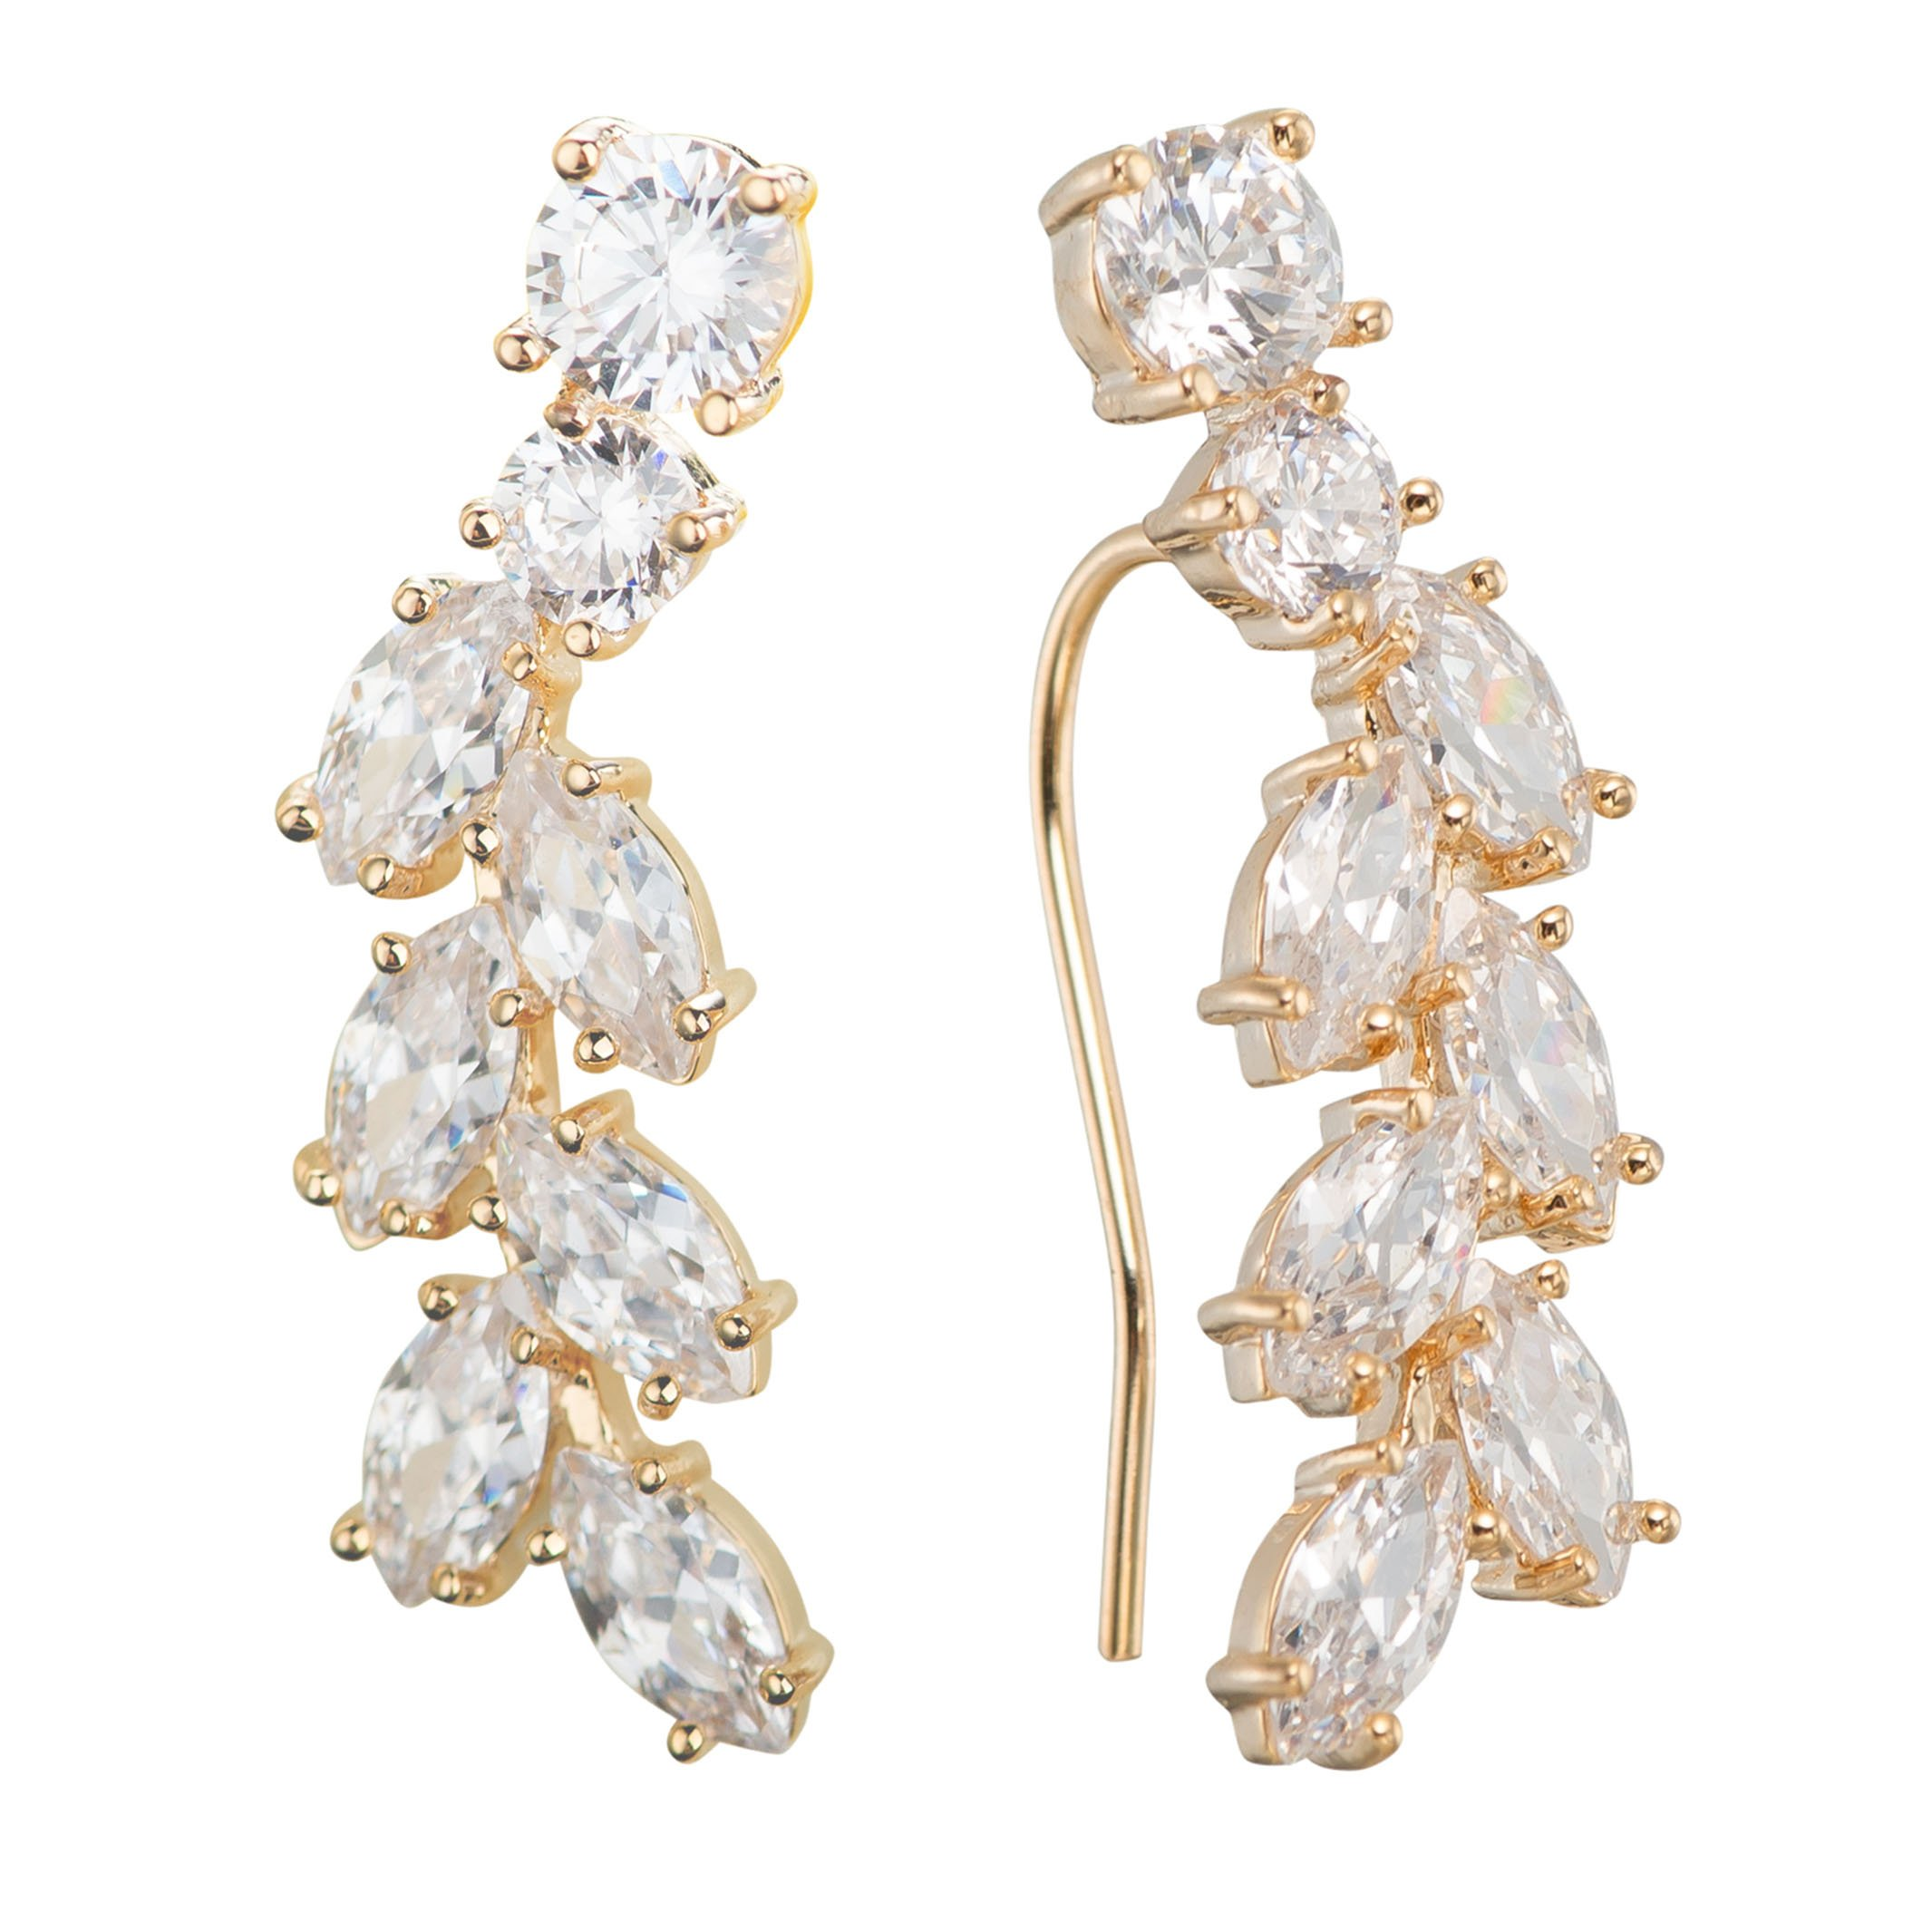 Chicinside Sweep up CZ Crystal Ear Wrap Pin Ear Cuffs Climbers Hook Earrings (gold-plated-base) by Chicinside